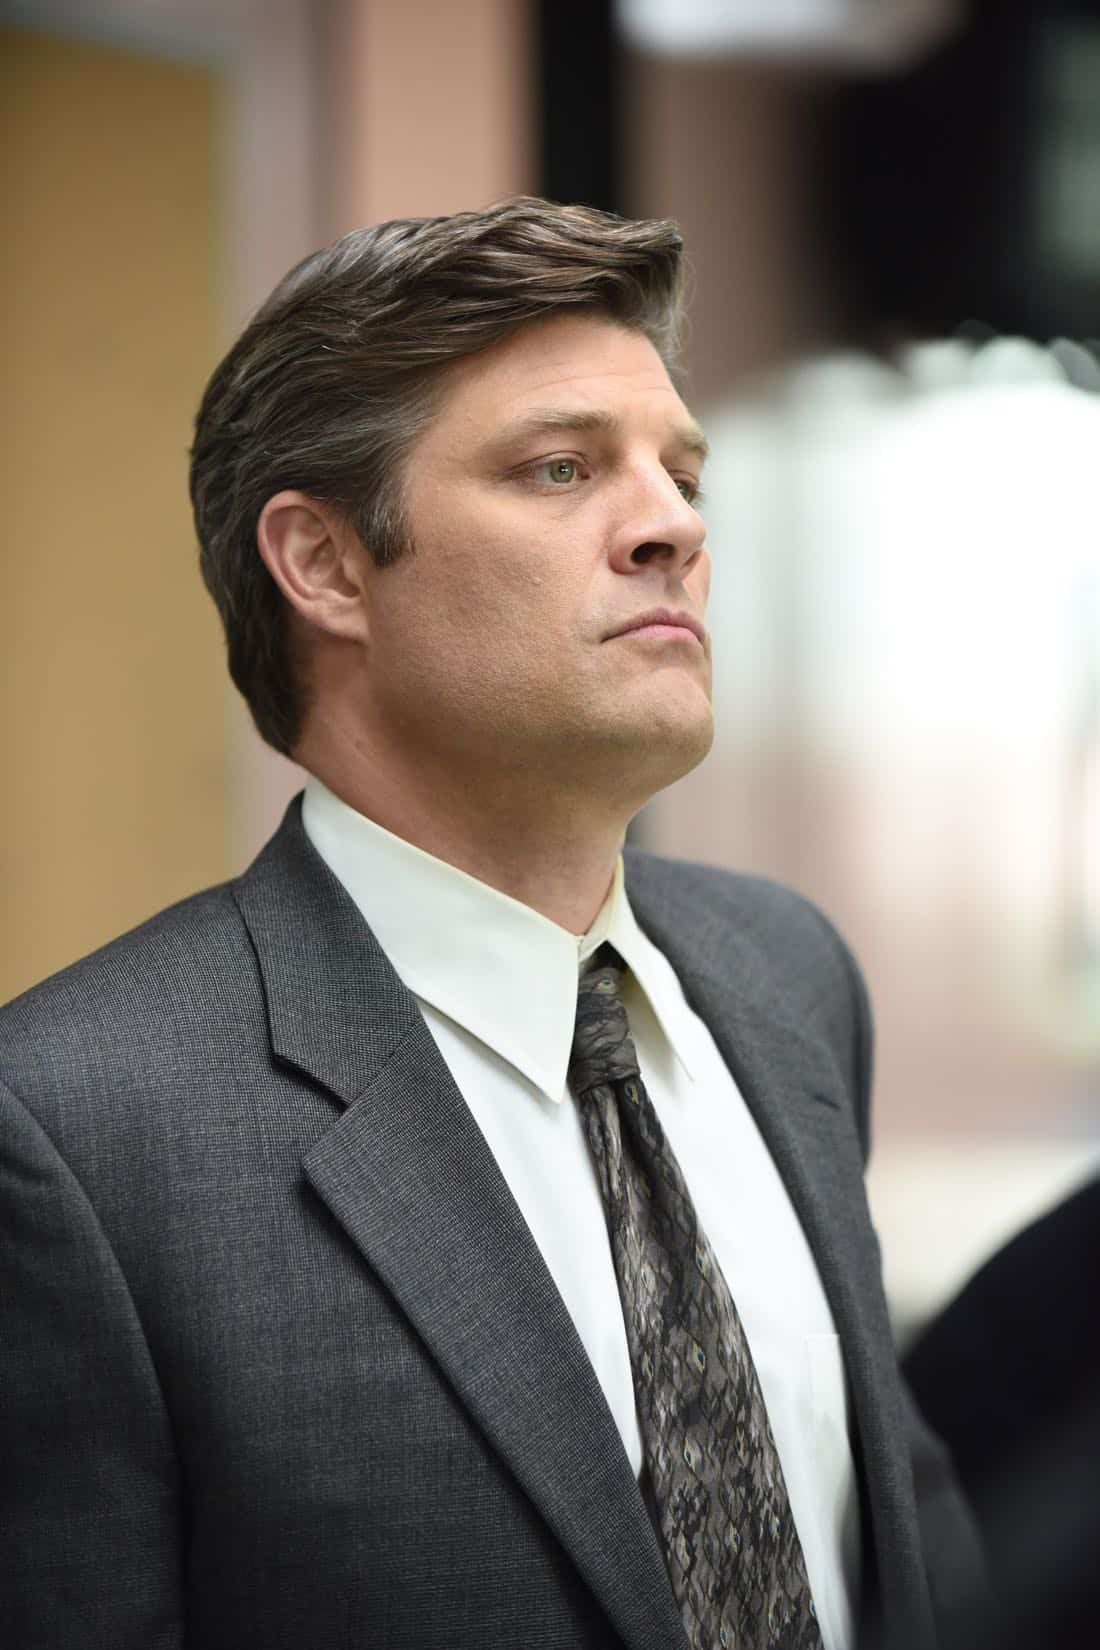 """THE ASSASSINATION OF GIANNI VERSACE: AMERICAN CRIME STORY """"Manhunt"""" Episode 2 (Airs Wednesday. January 24, 10:00 p.m. e/p) -- Pictured: Jay R. Ferguson as FBI Agent Evans. CR: Ray Mickshaw/FX"""